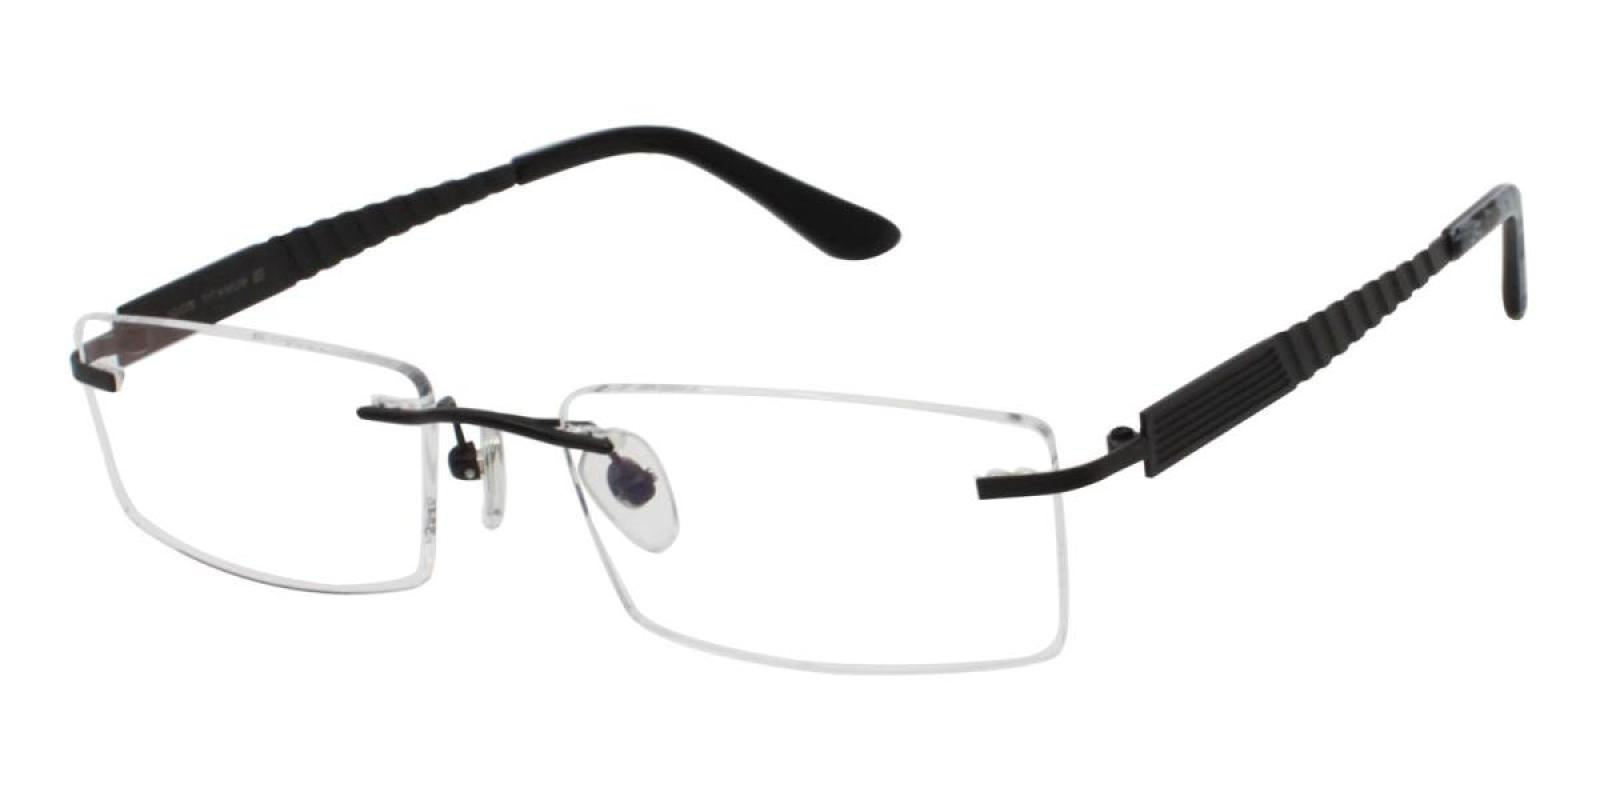 Blaymond-Black-Varieties-Titanium-Eyeglasses-additional1